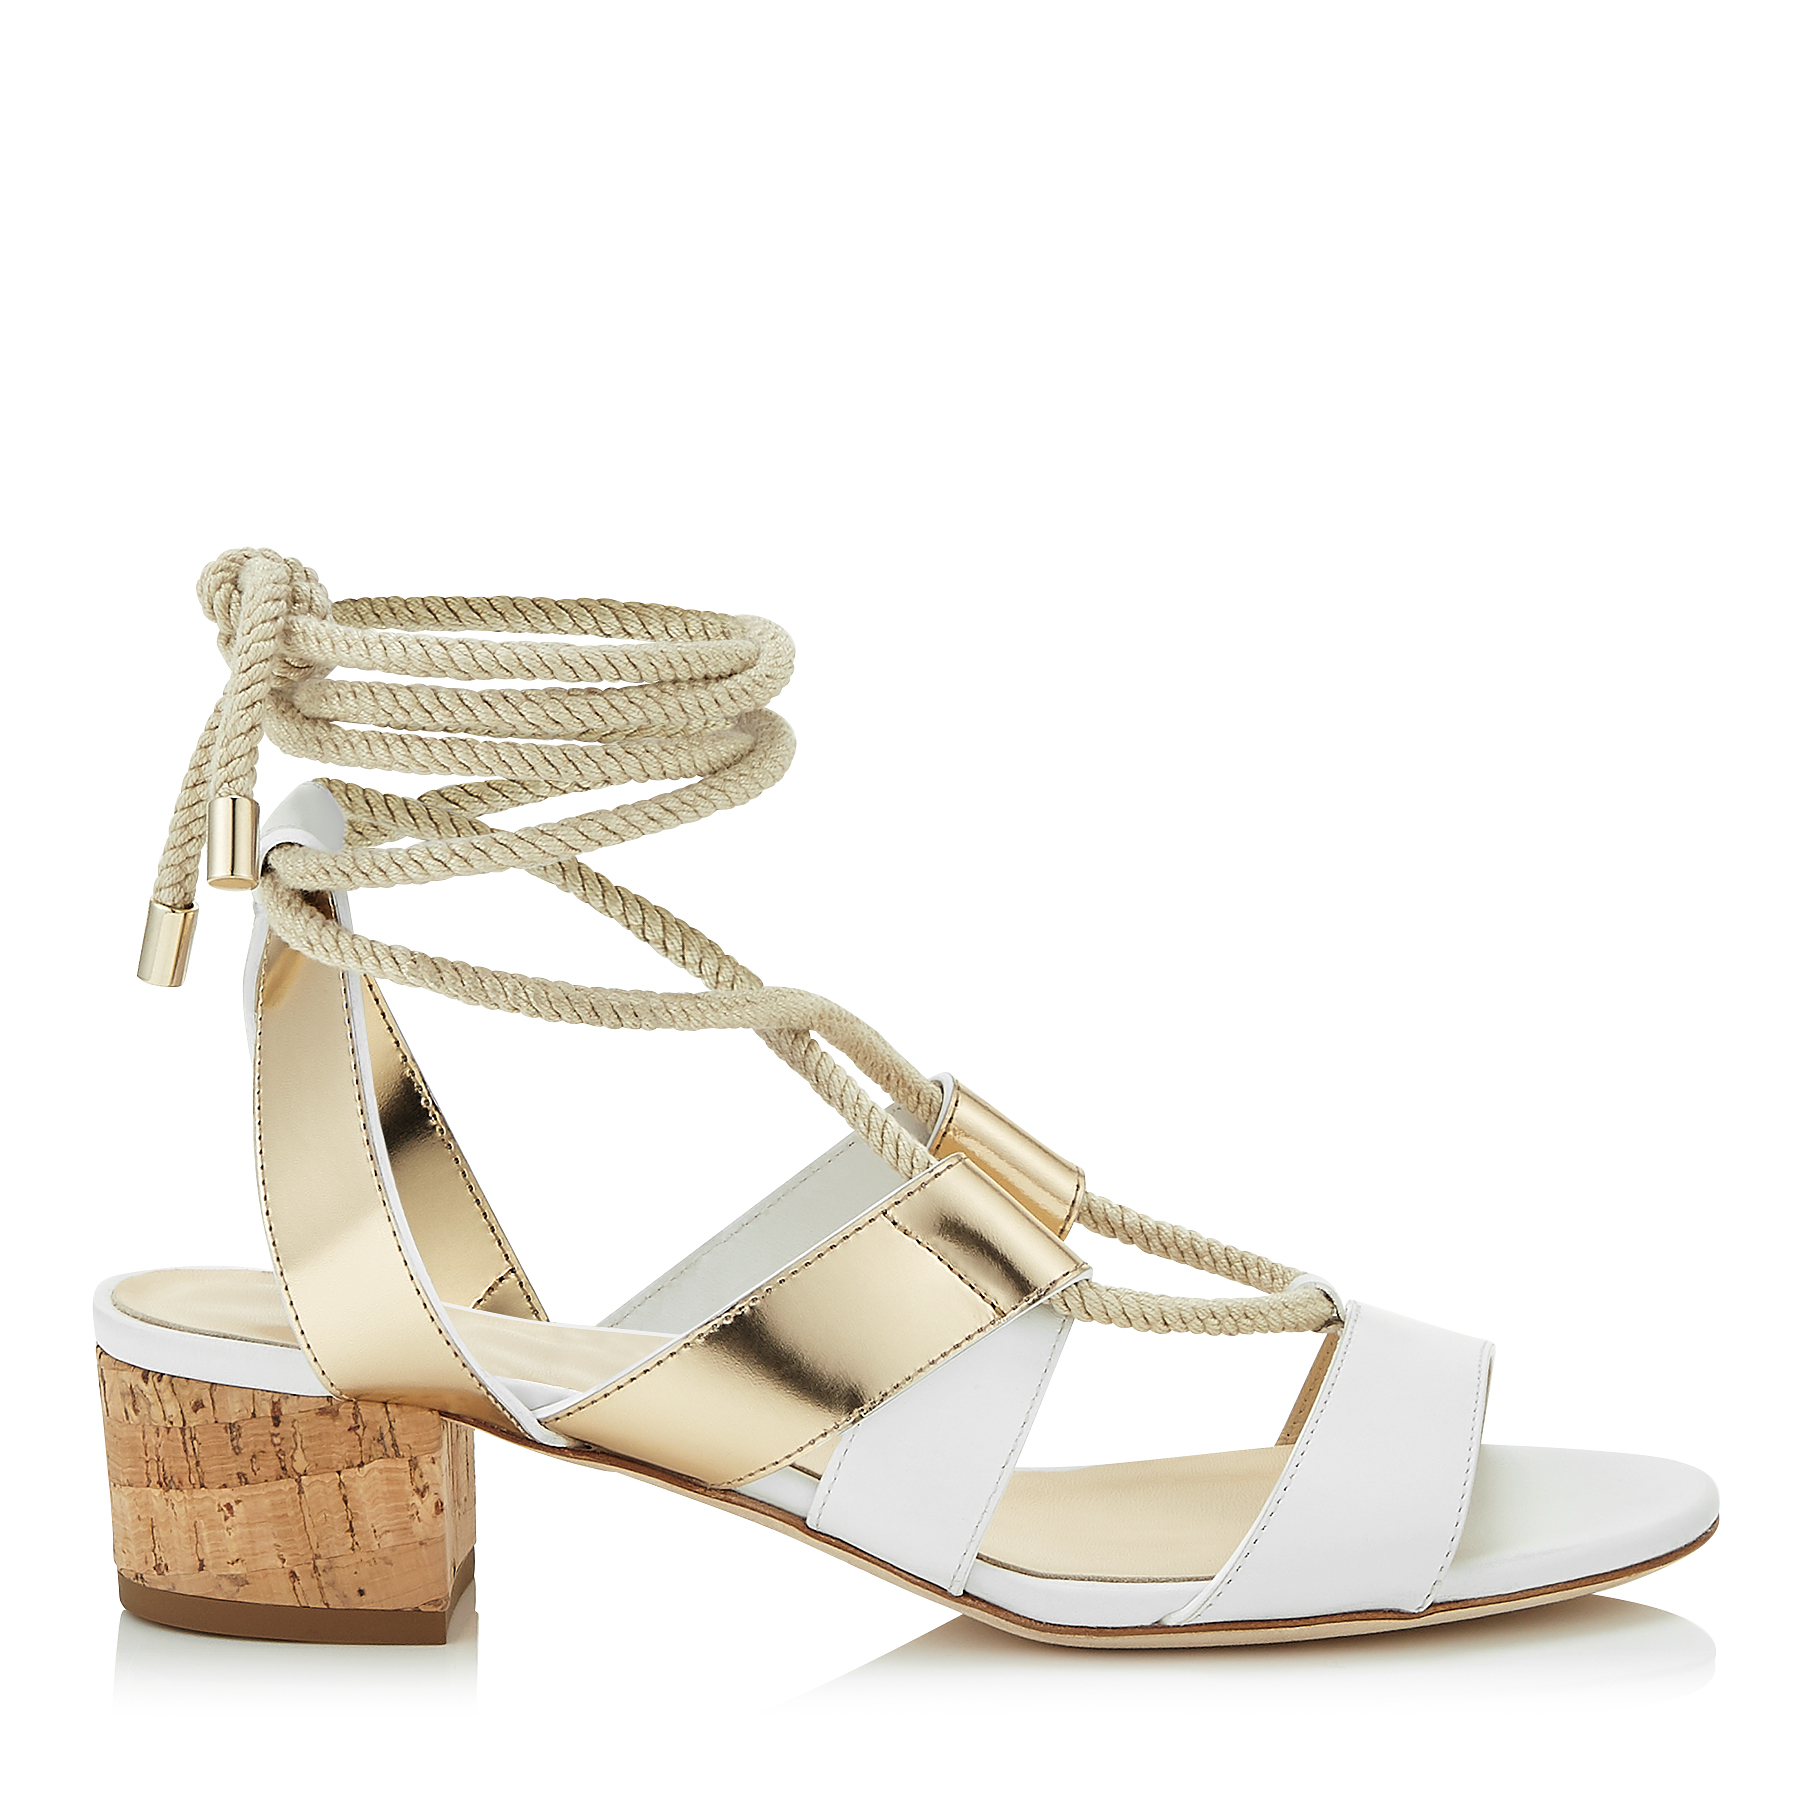 MADDIE 40 White Vachetta and Gold Mirror Leather Sandals by Jimmy Choo